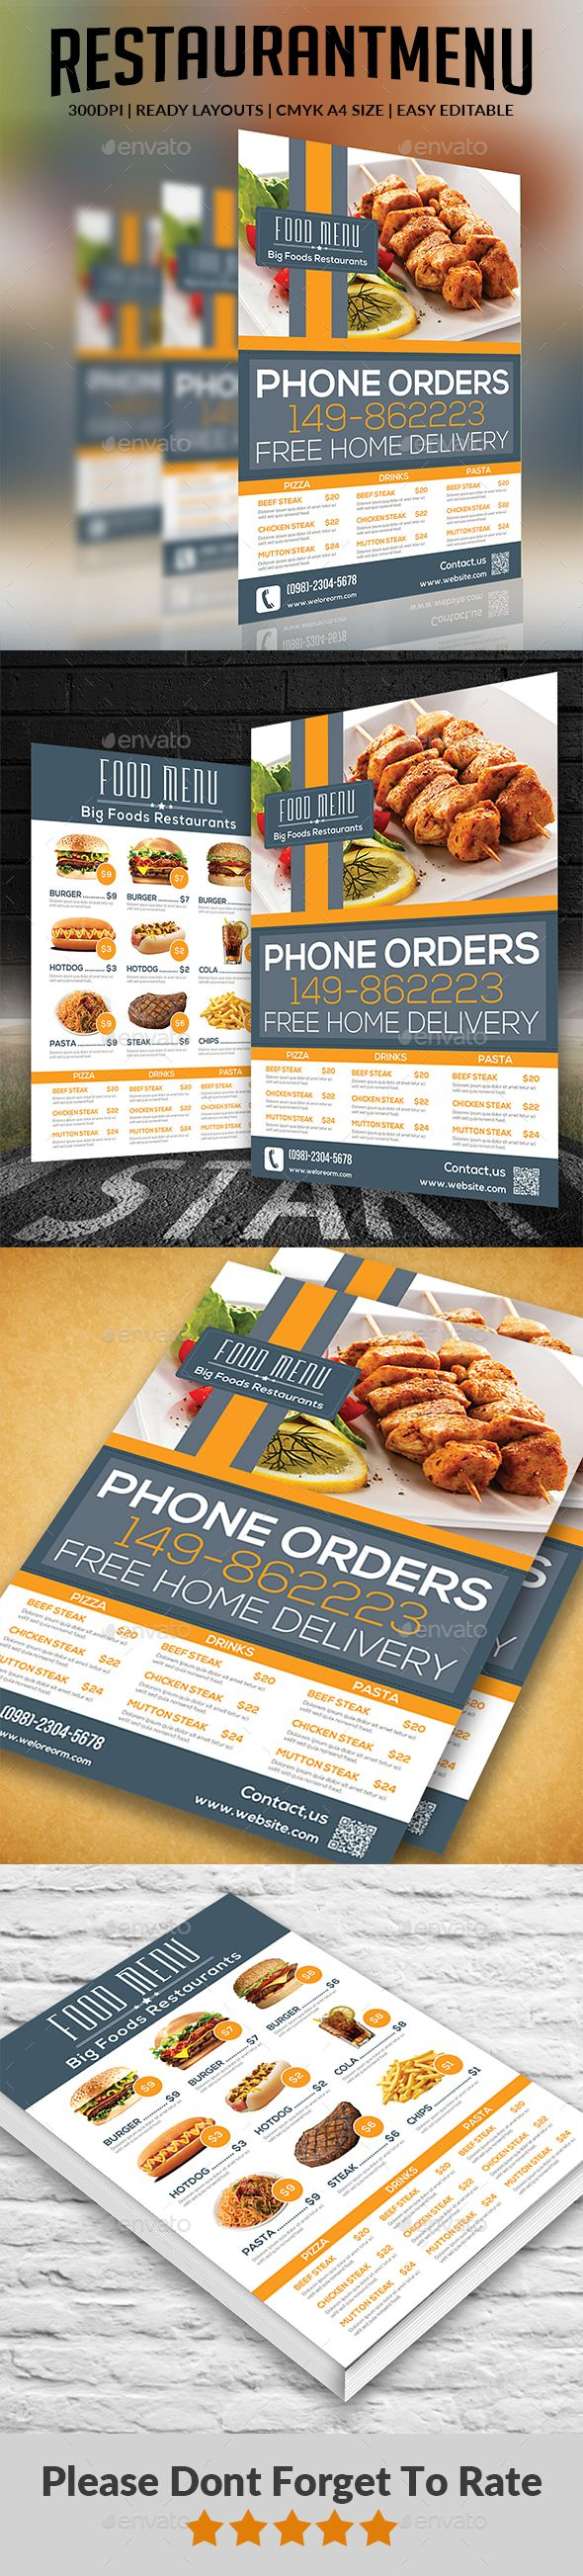 Best Food Menu  Print Templates  Psd Images On